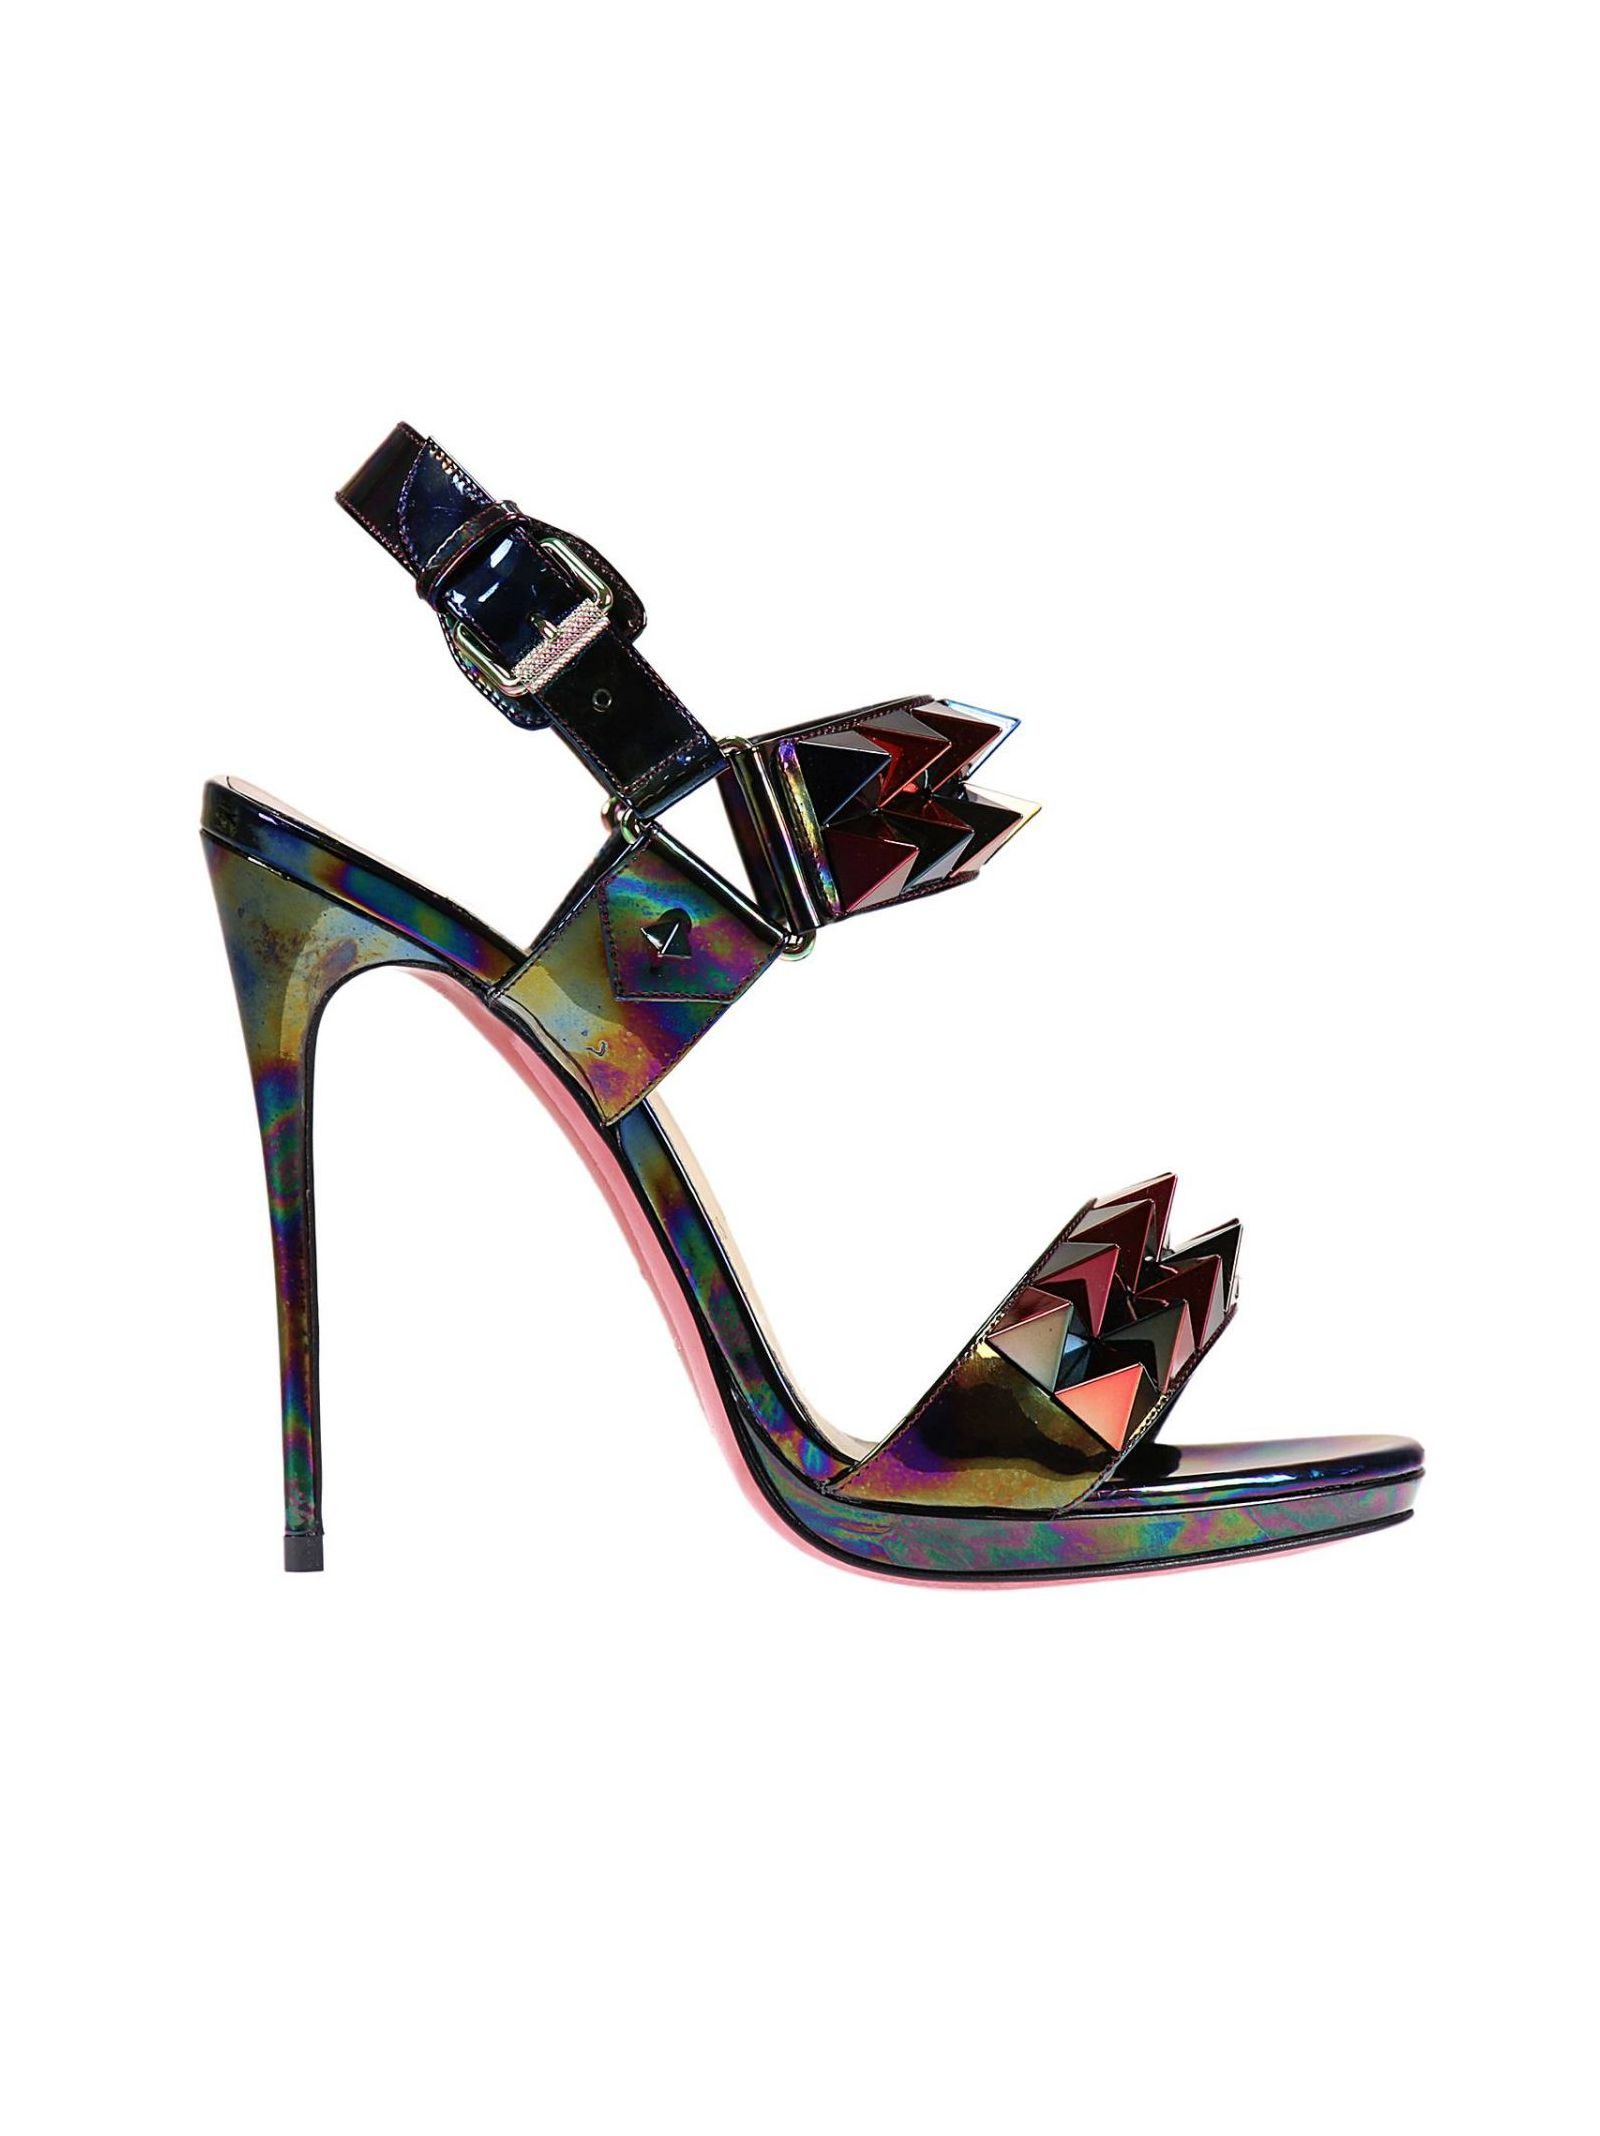 Heeled Sandals Shoes Woman Christian Louboutin - Christian Louboutin - Cluster 2